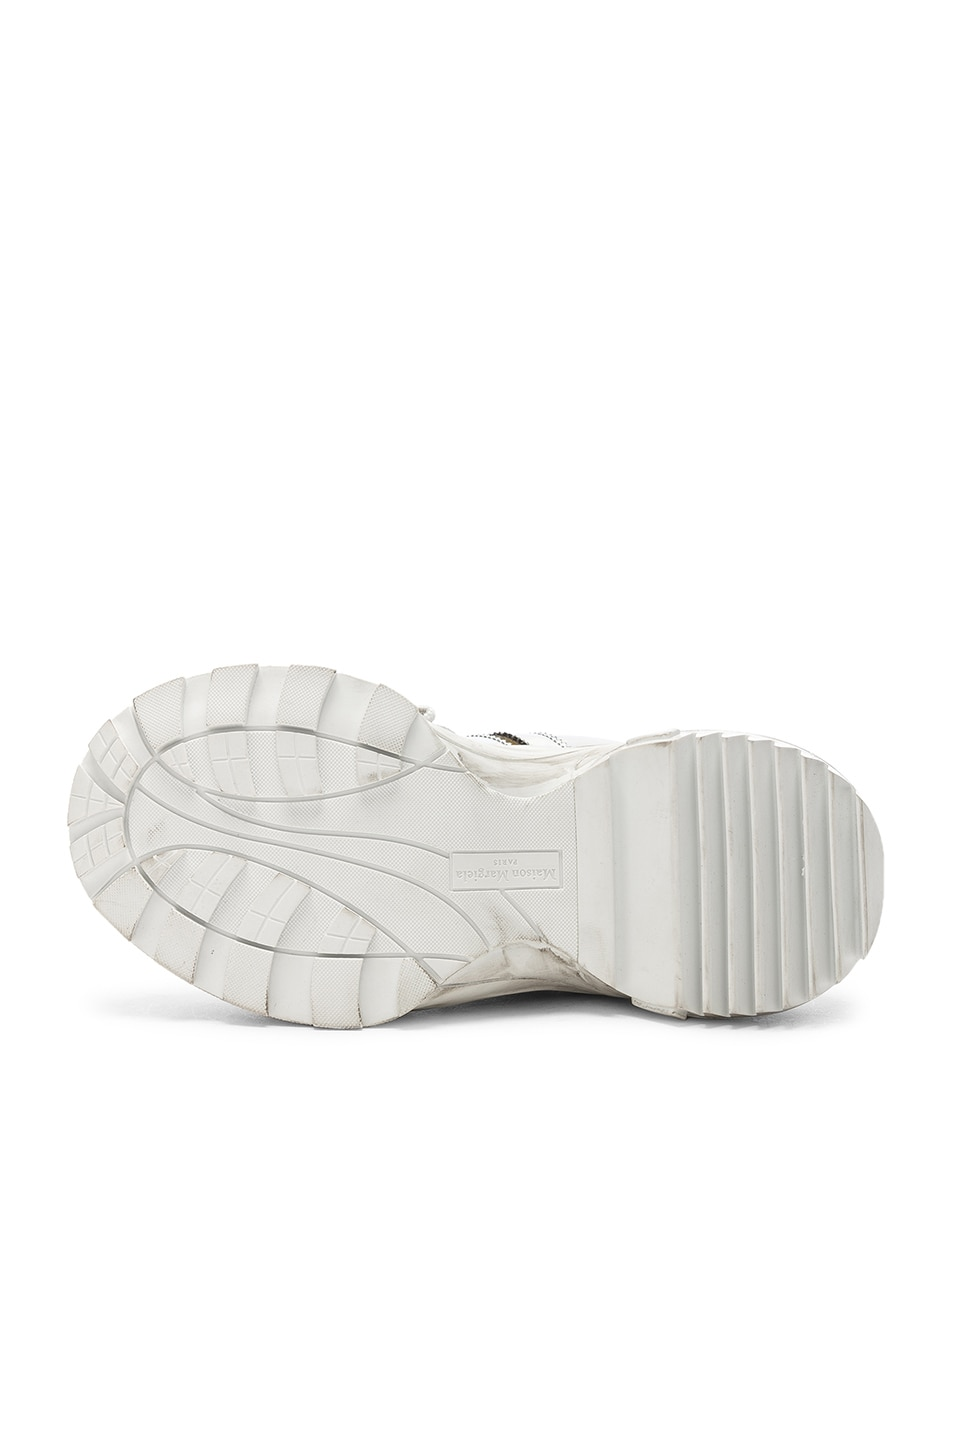 Image 6 of Maison Margiela Leather Sneakers in White & Black Raven